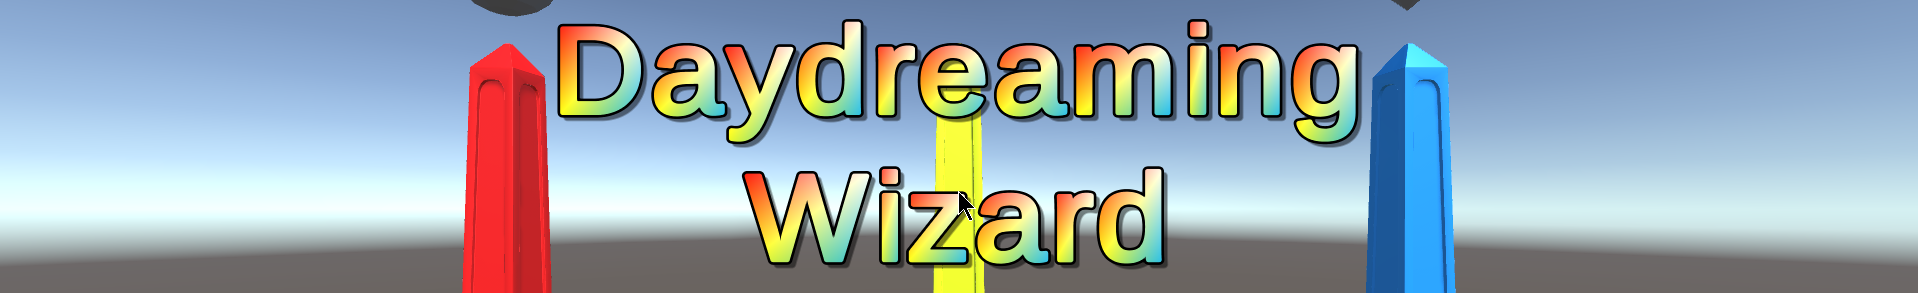 Daydreaming Wizard - #7DFPS 2018